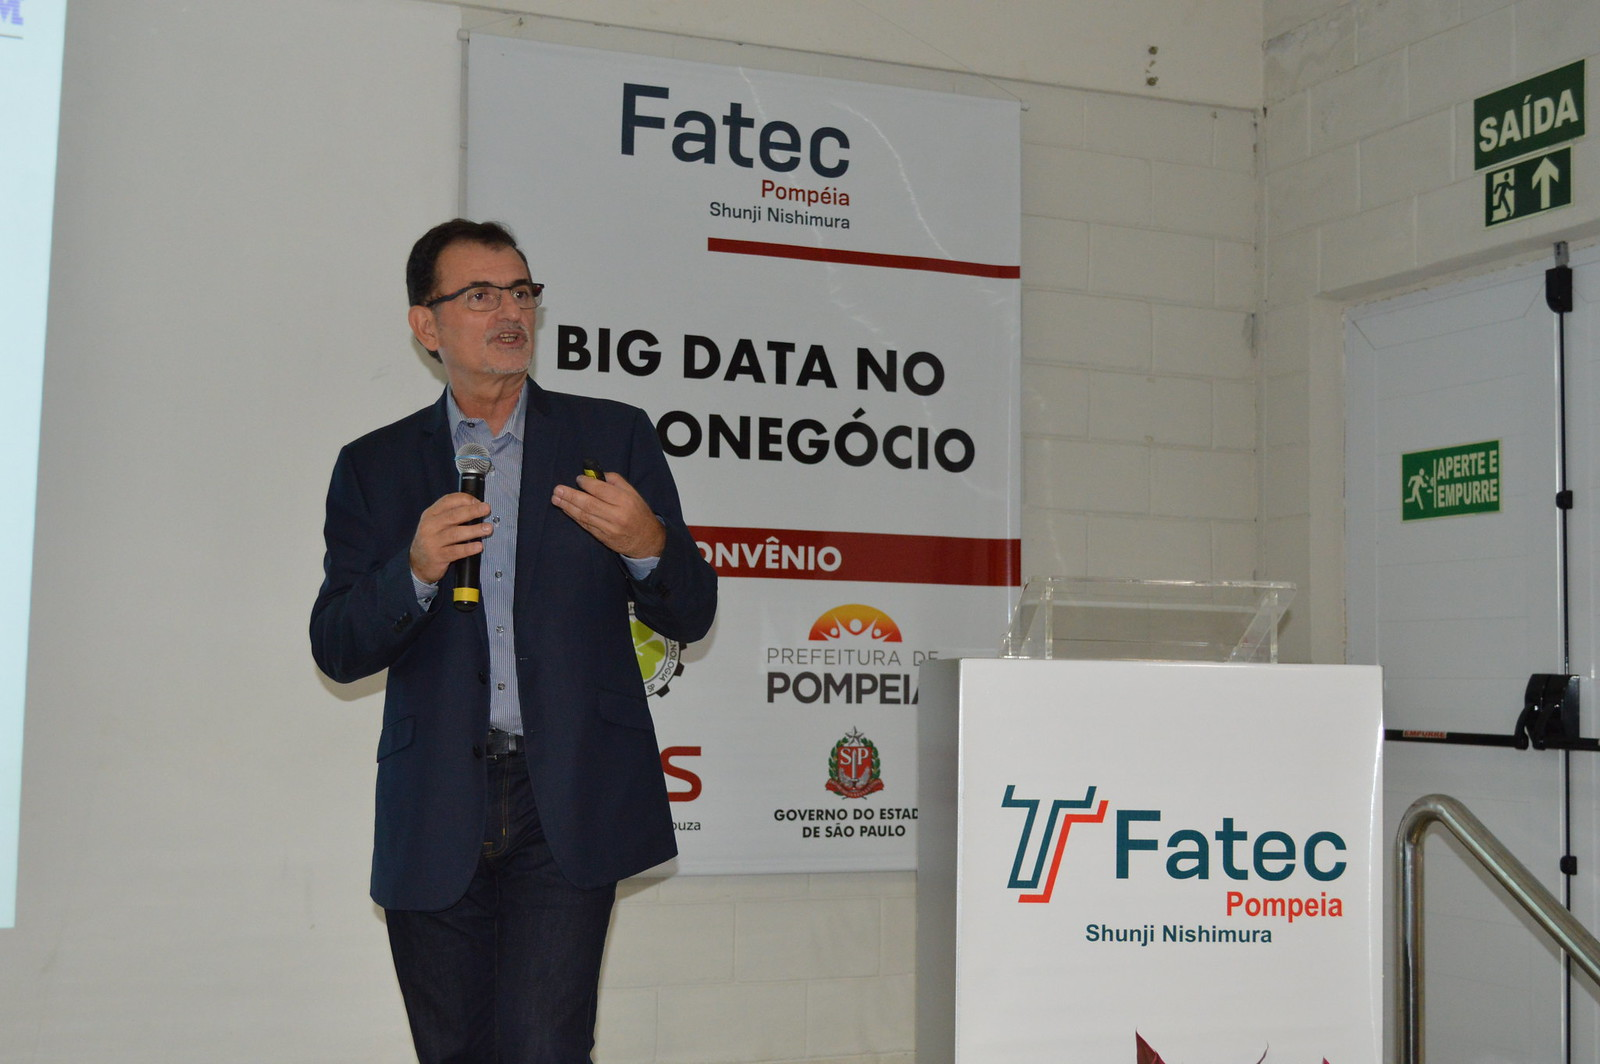 Fatec Pompeia promove aula inaugural do curso de Big Data do Agronegócio